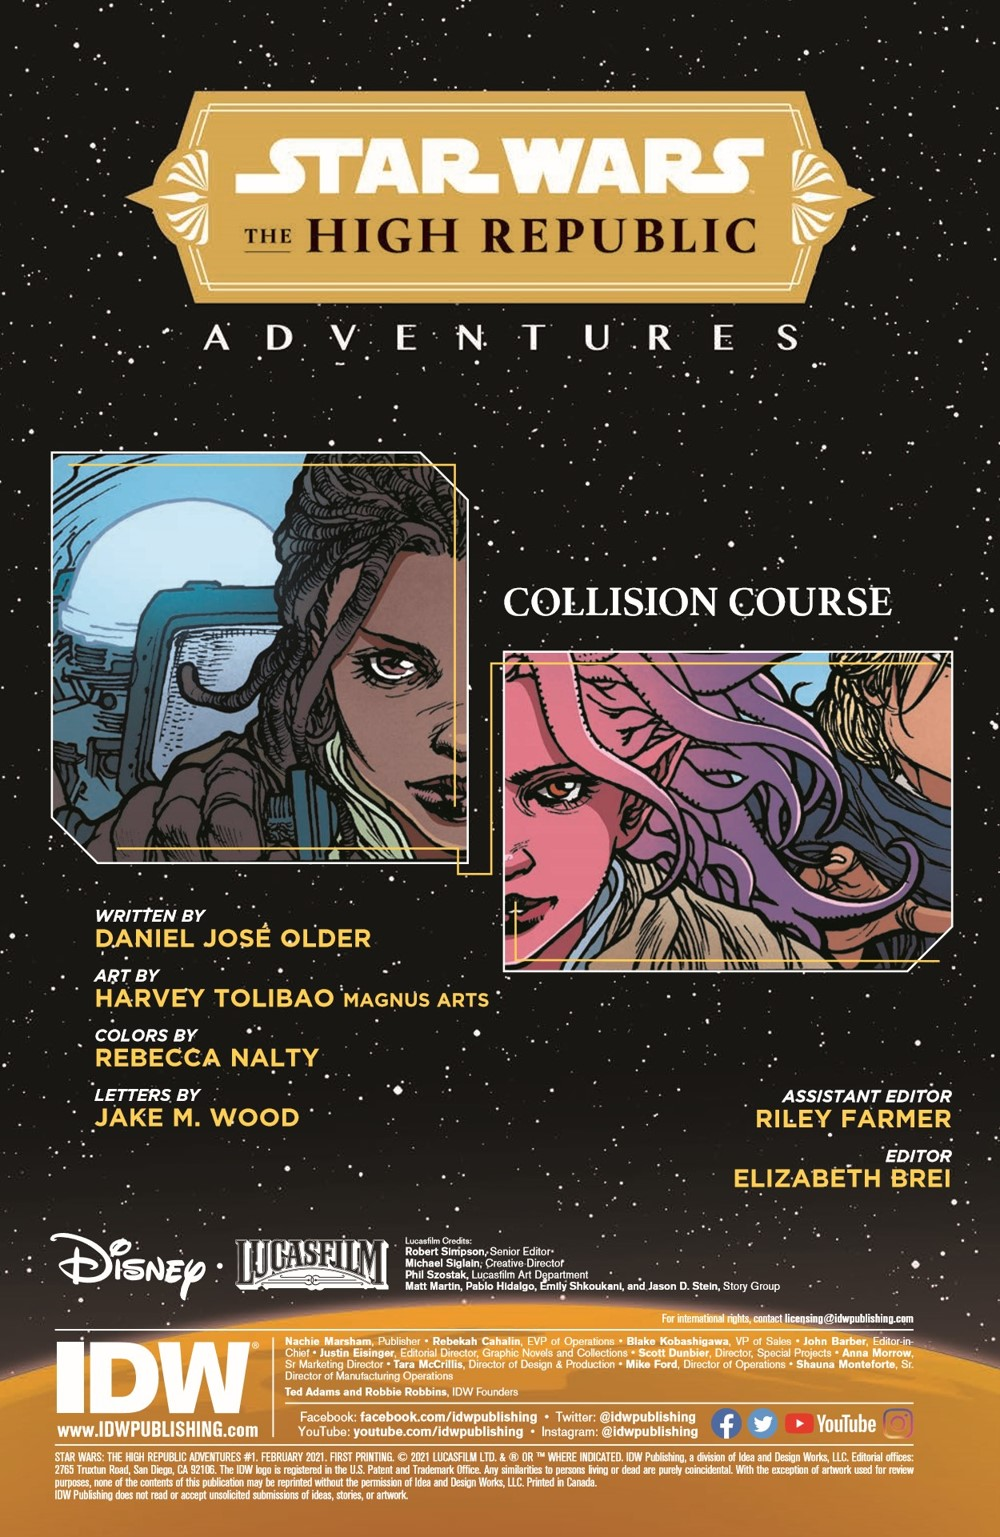 SWAHRA01-pr-2 ComicList Previews: STAR WARS THE HIGH REPUBLIC ADVENTURES #1